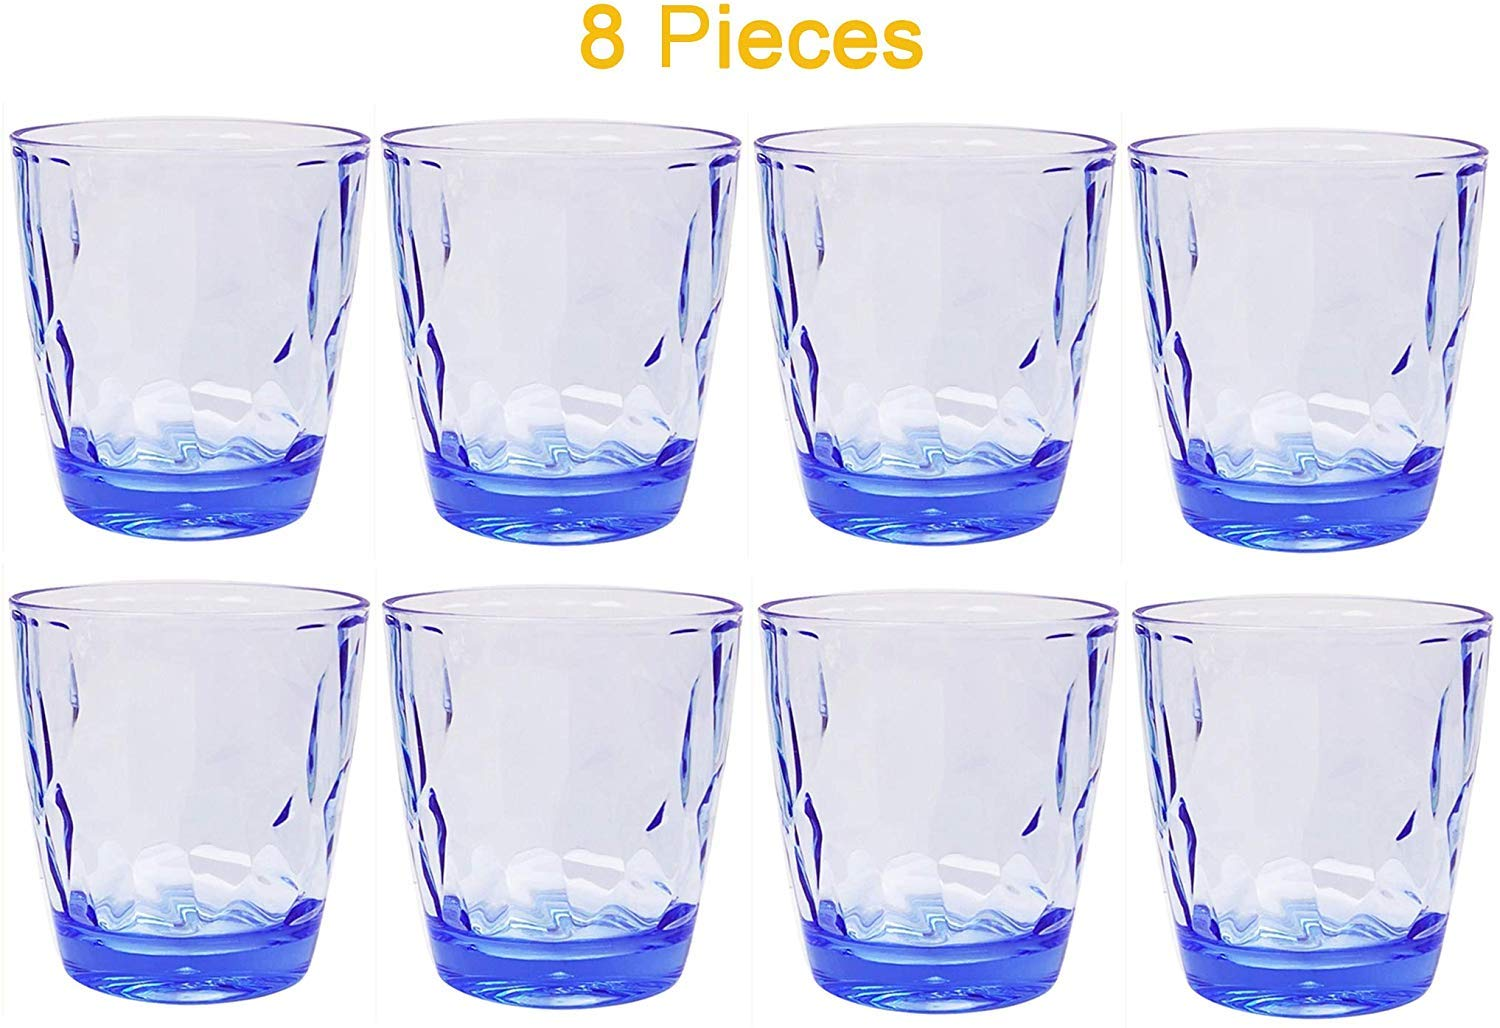 Pack of 8 Premium Acrylic Unbreakable Drinking Glasses Dishwasher Safe BPA Free Juice Glasses for Kids Nontoxic Tumblers 10.5 Ounce